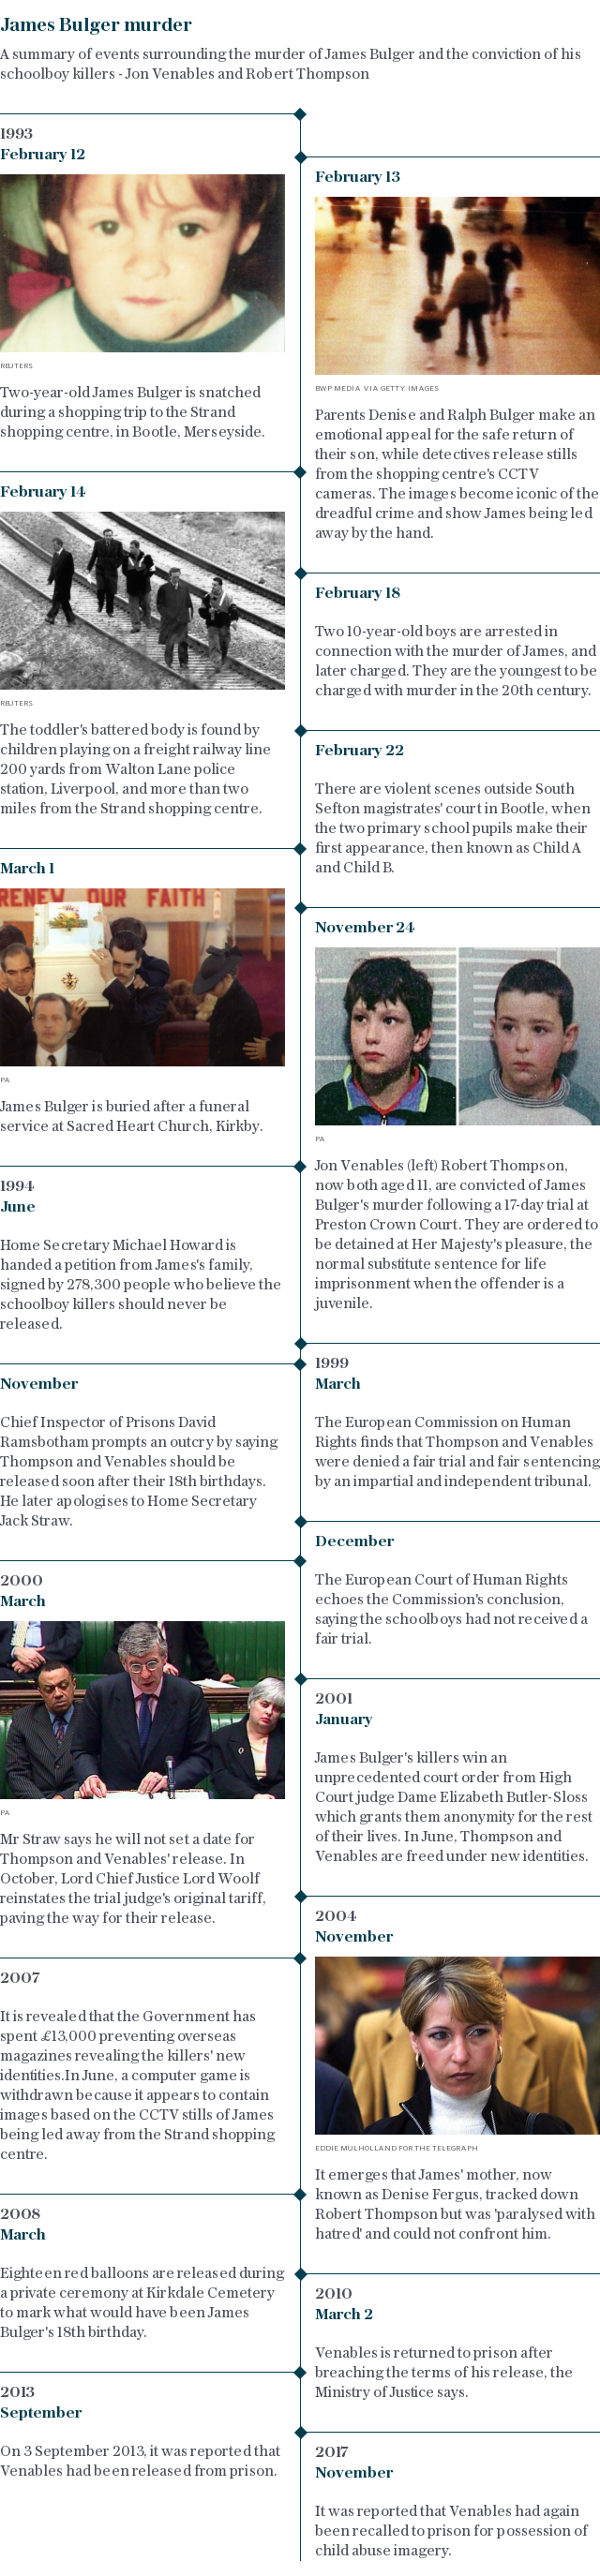 Timeline | James Bulger murder